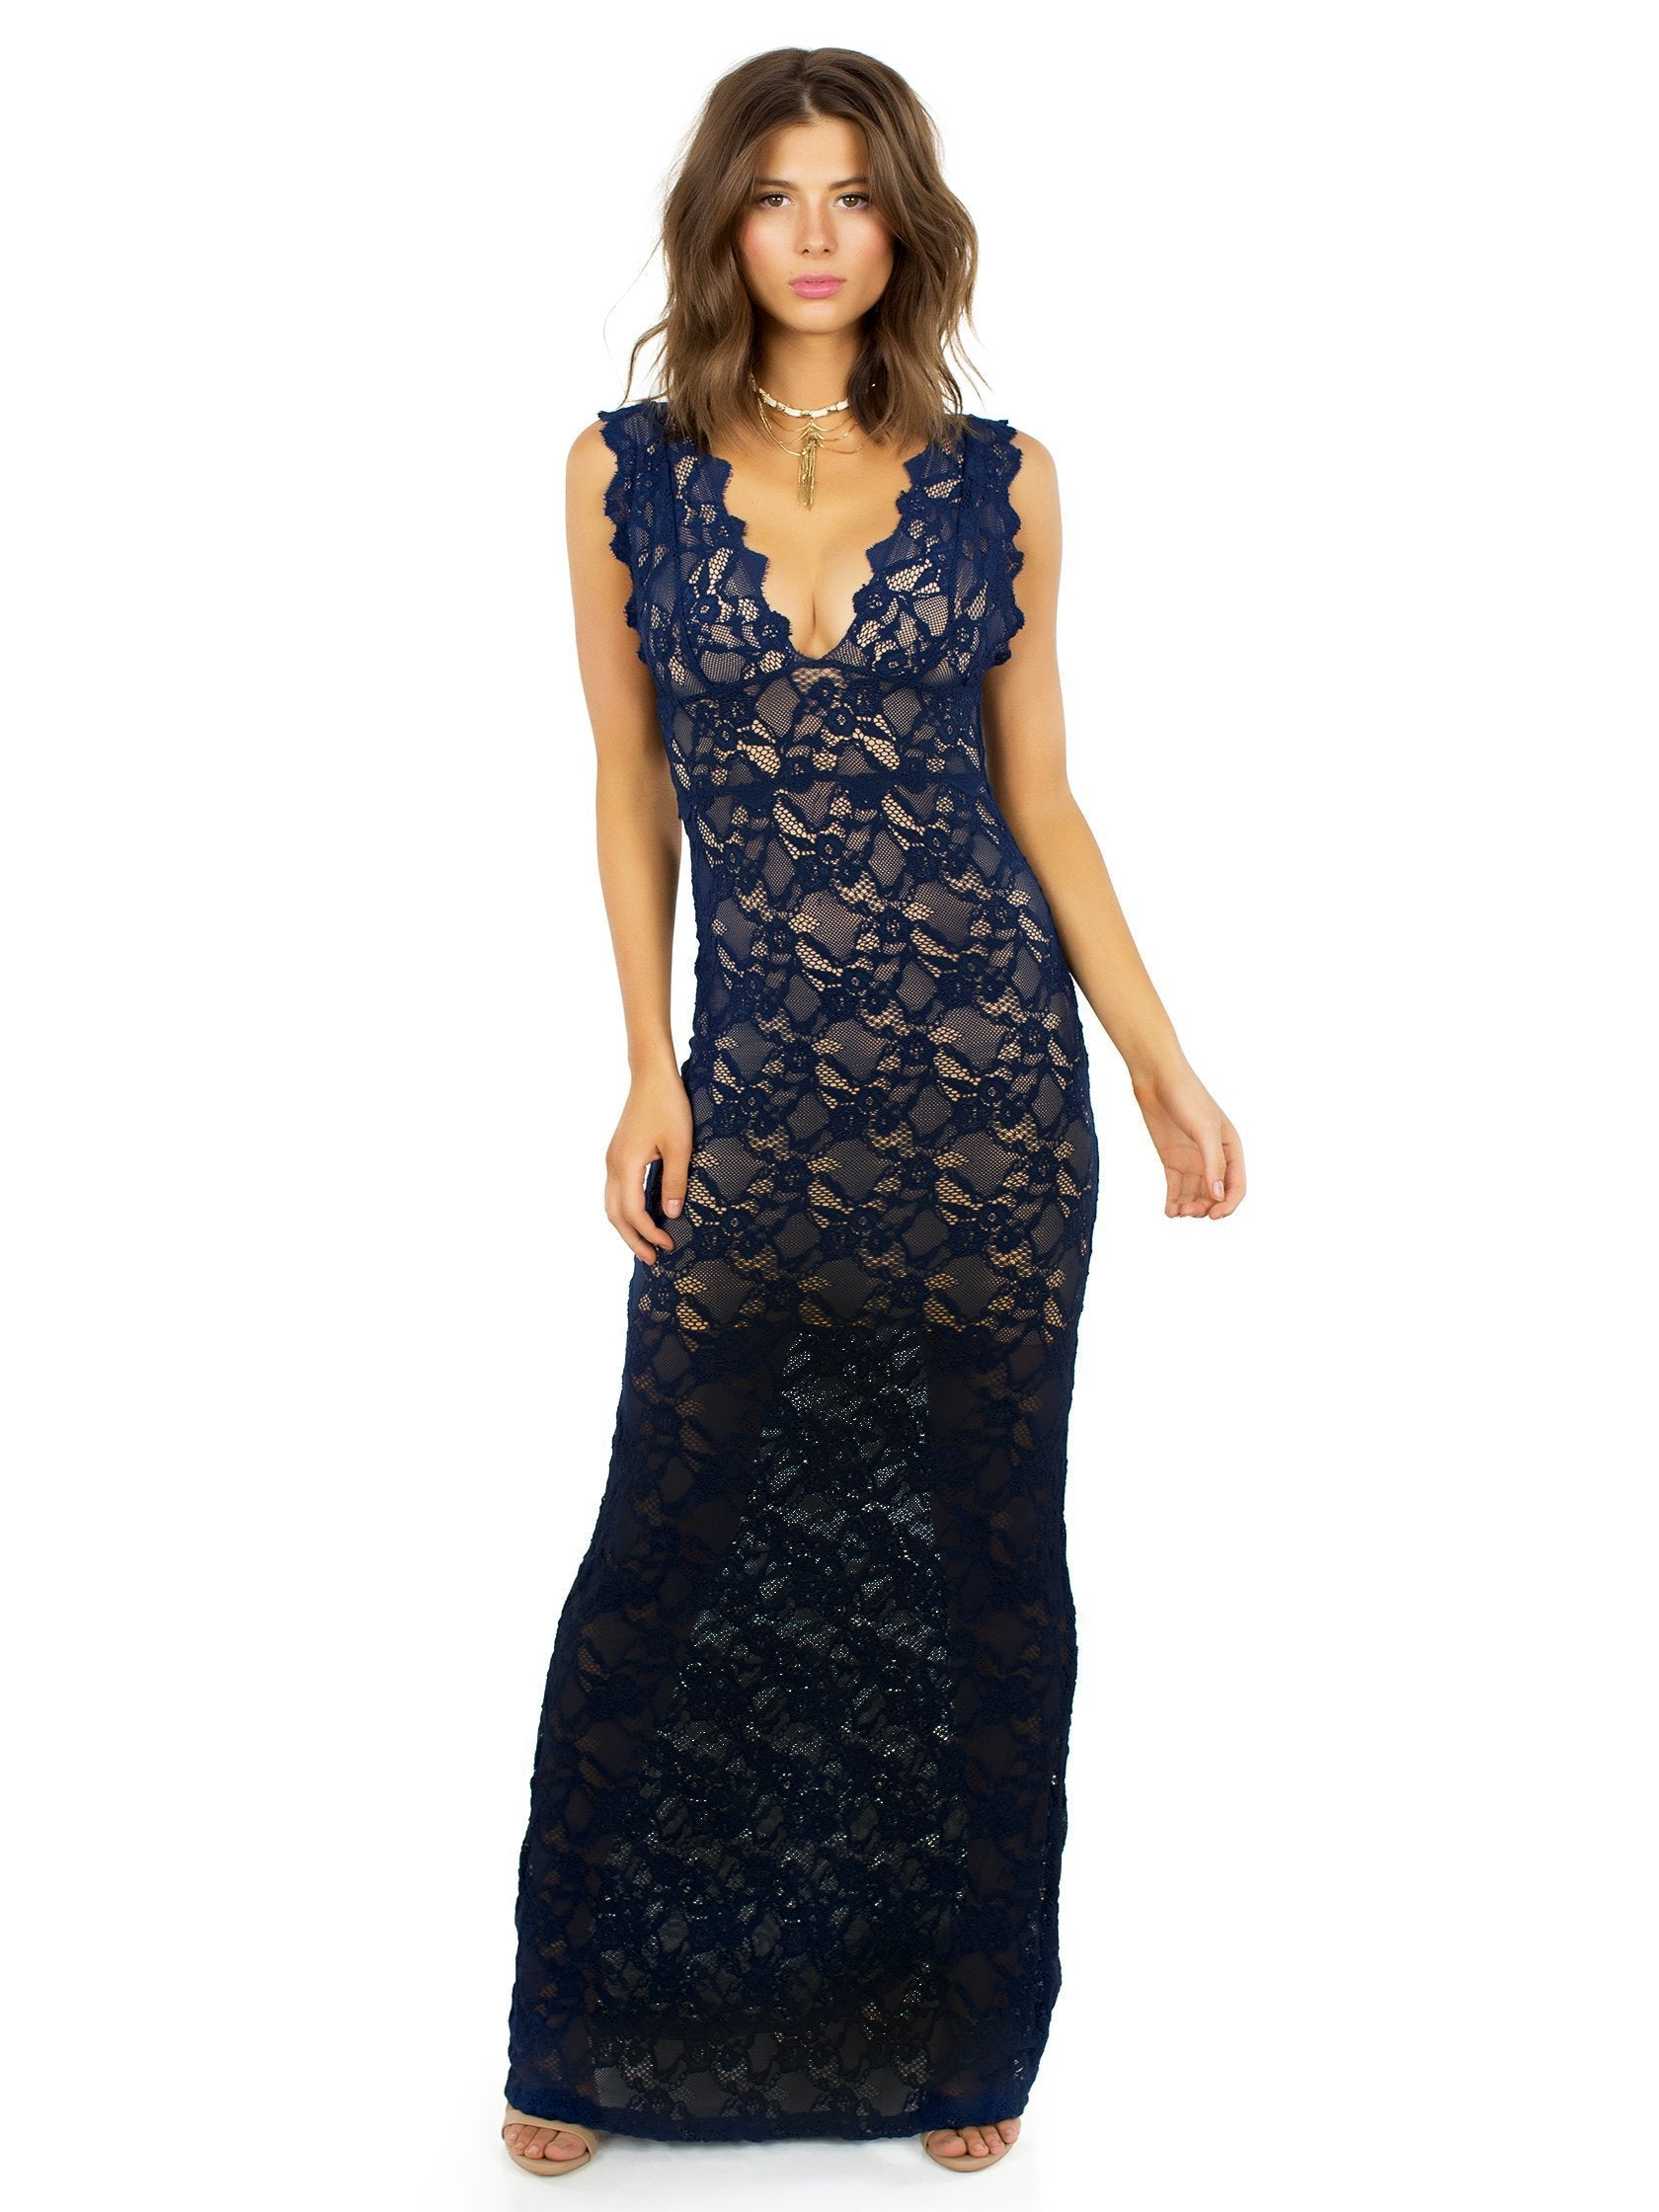 Women outfit in a dress rental from Nightcap Clothing called Perfect Plunge Maxi Dress